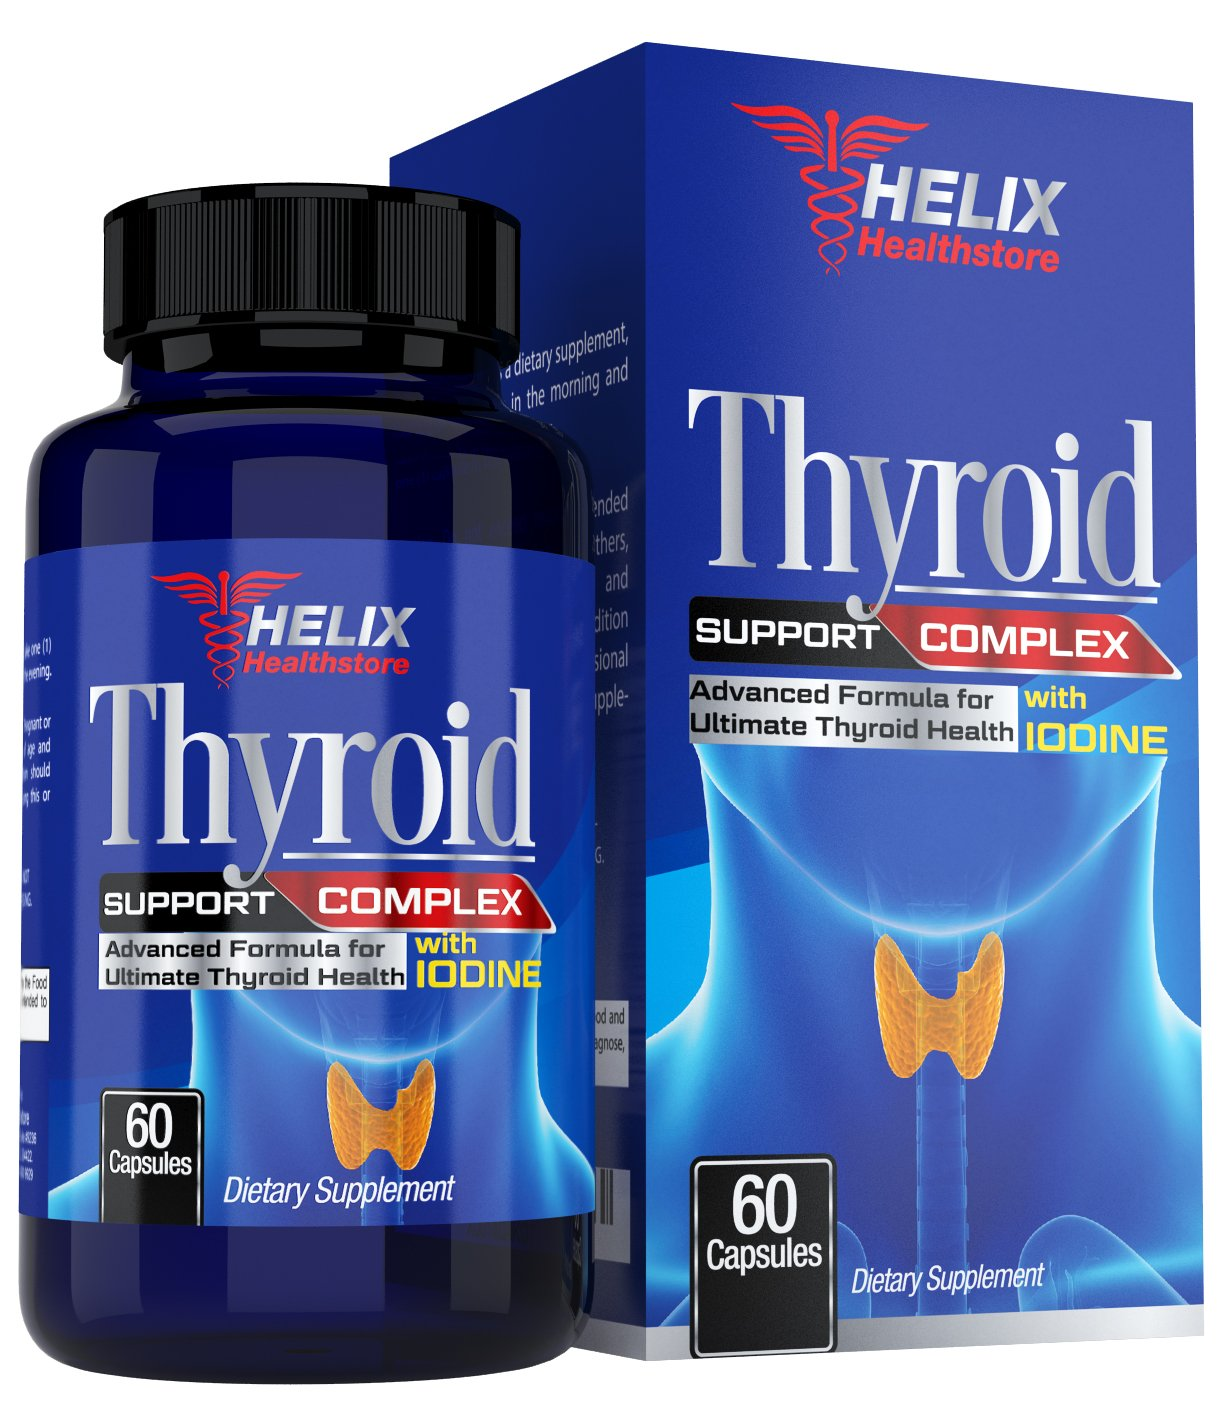 Thyroid Support Supplement with Iodine Kelp and Vitamin B12 for Energy Pills - Best Metabolism Booster for Weight Loss - Ashwagandha, Zinc, Selenium Complex Formula for Hormone Balance, Memory, Focus by Helix Healthstore